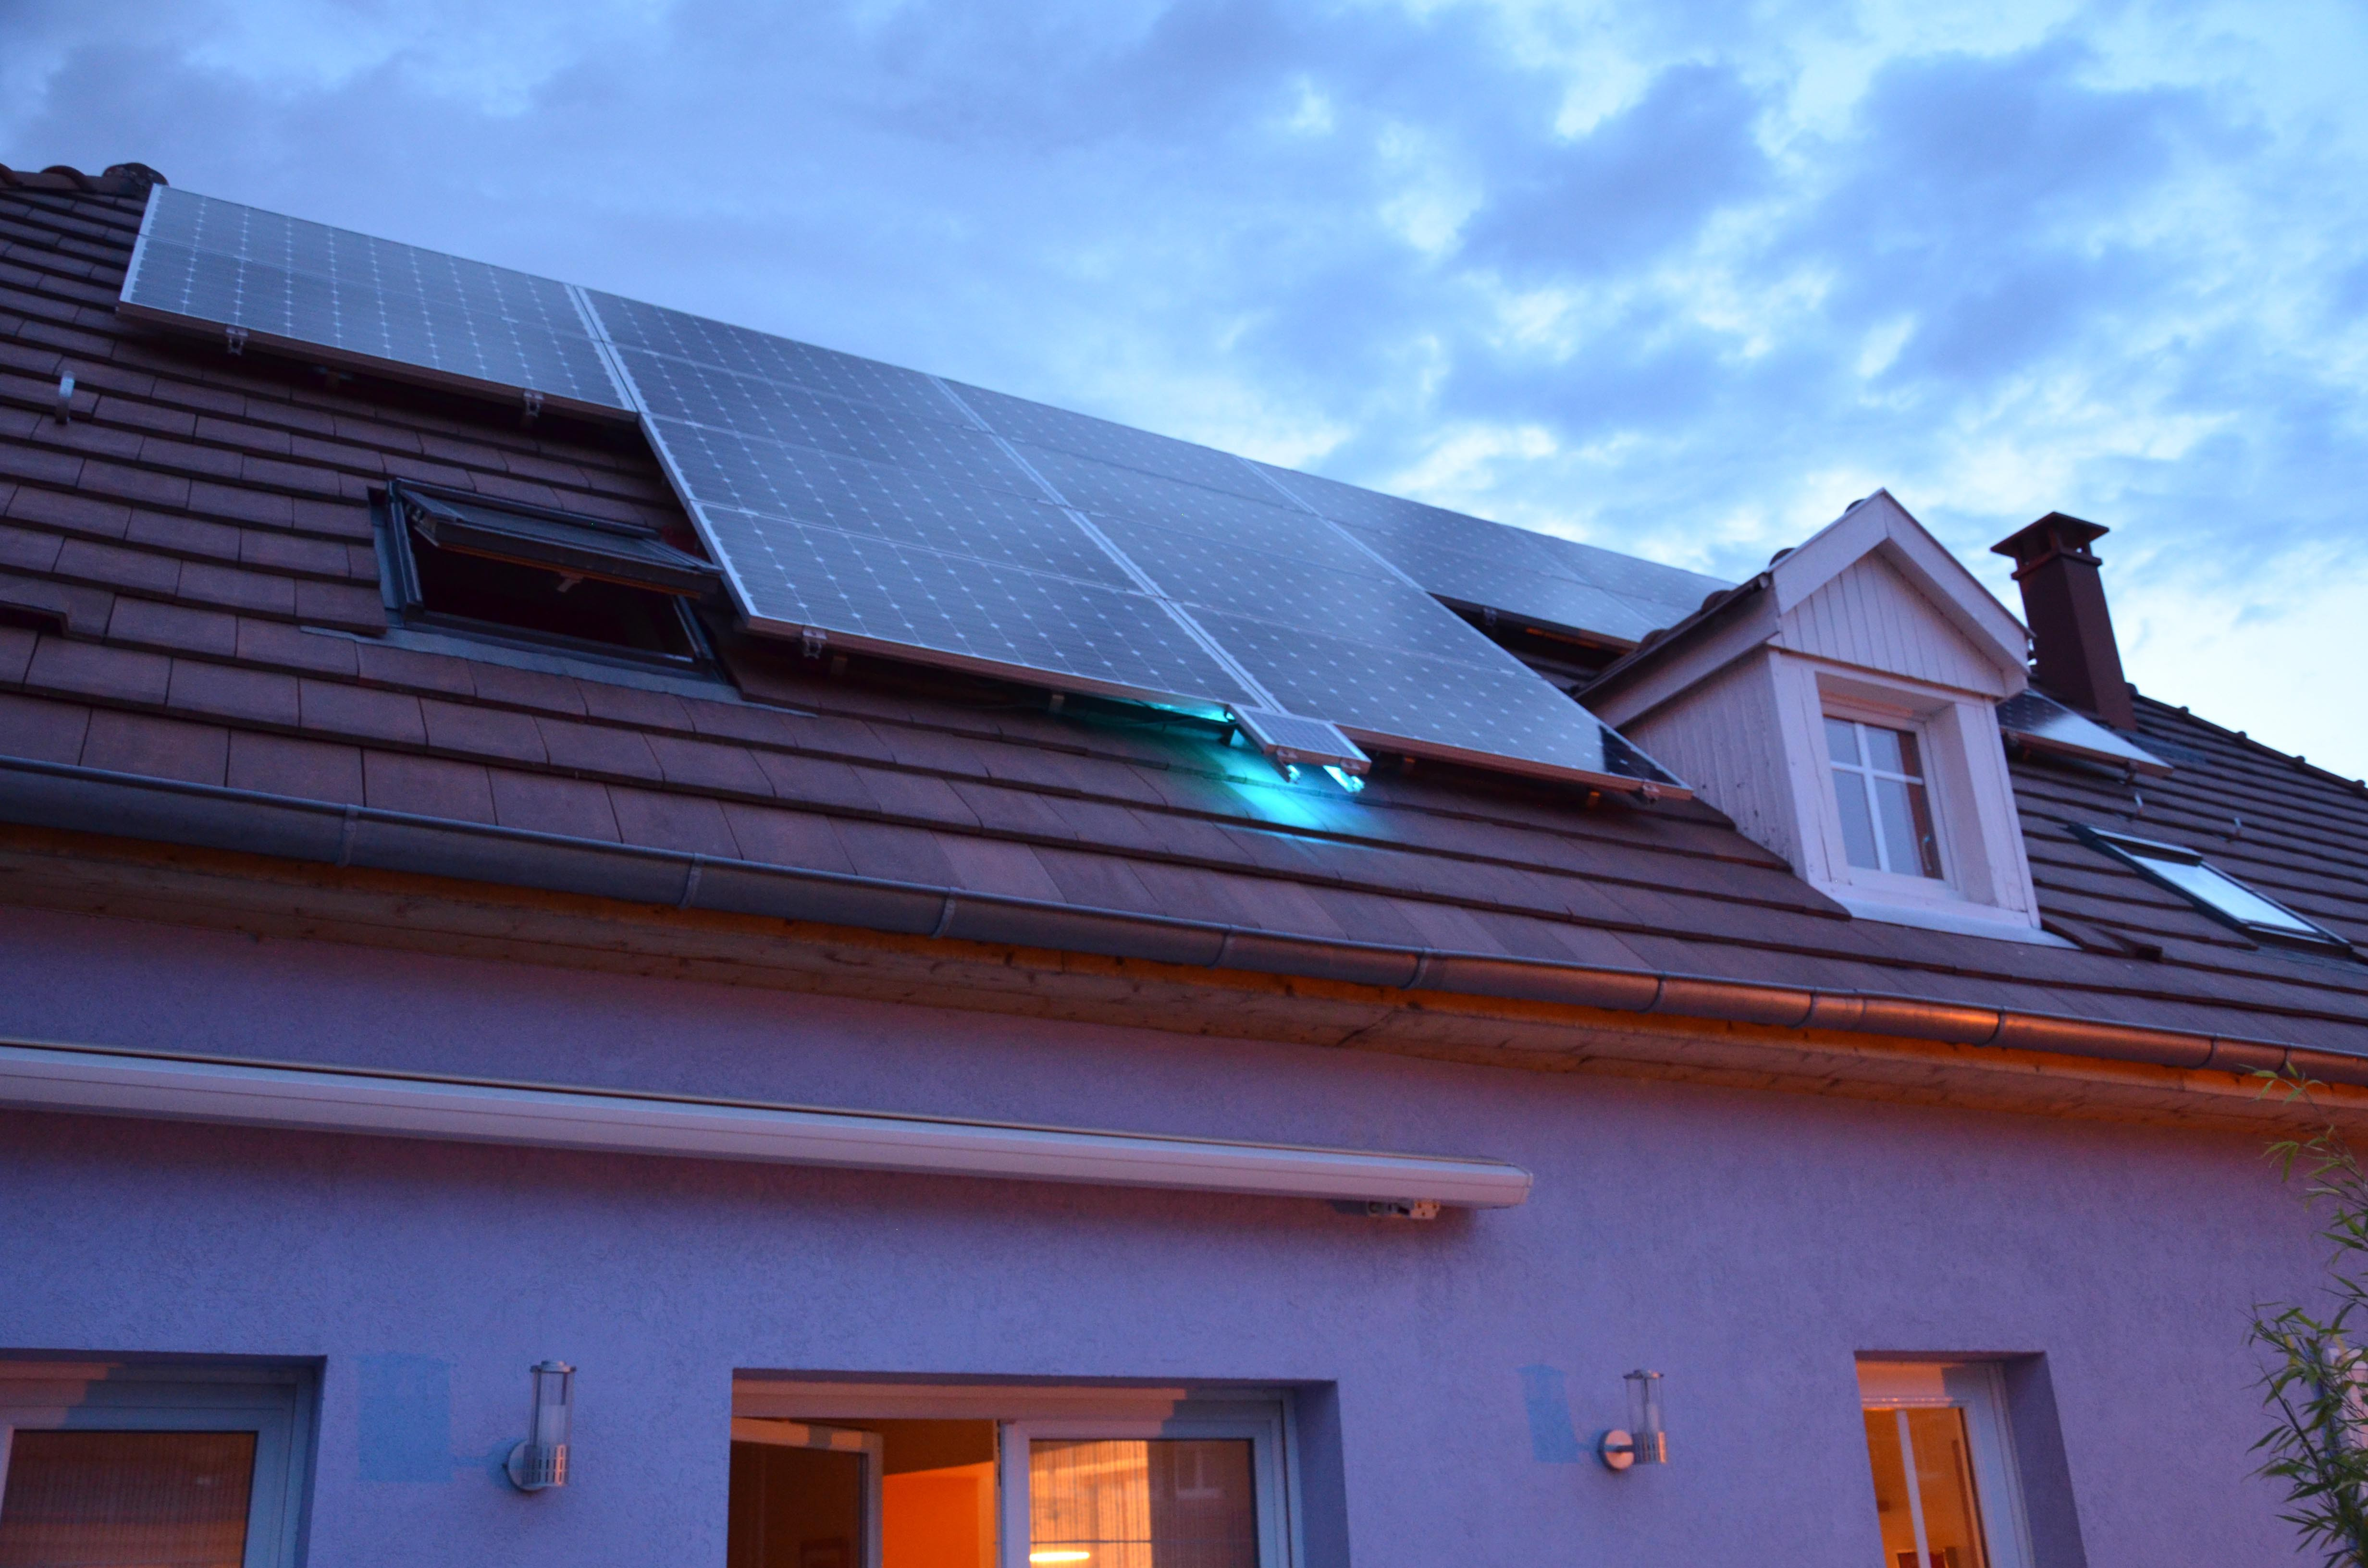 the house is supplied by the pv system